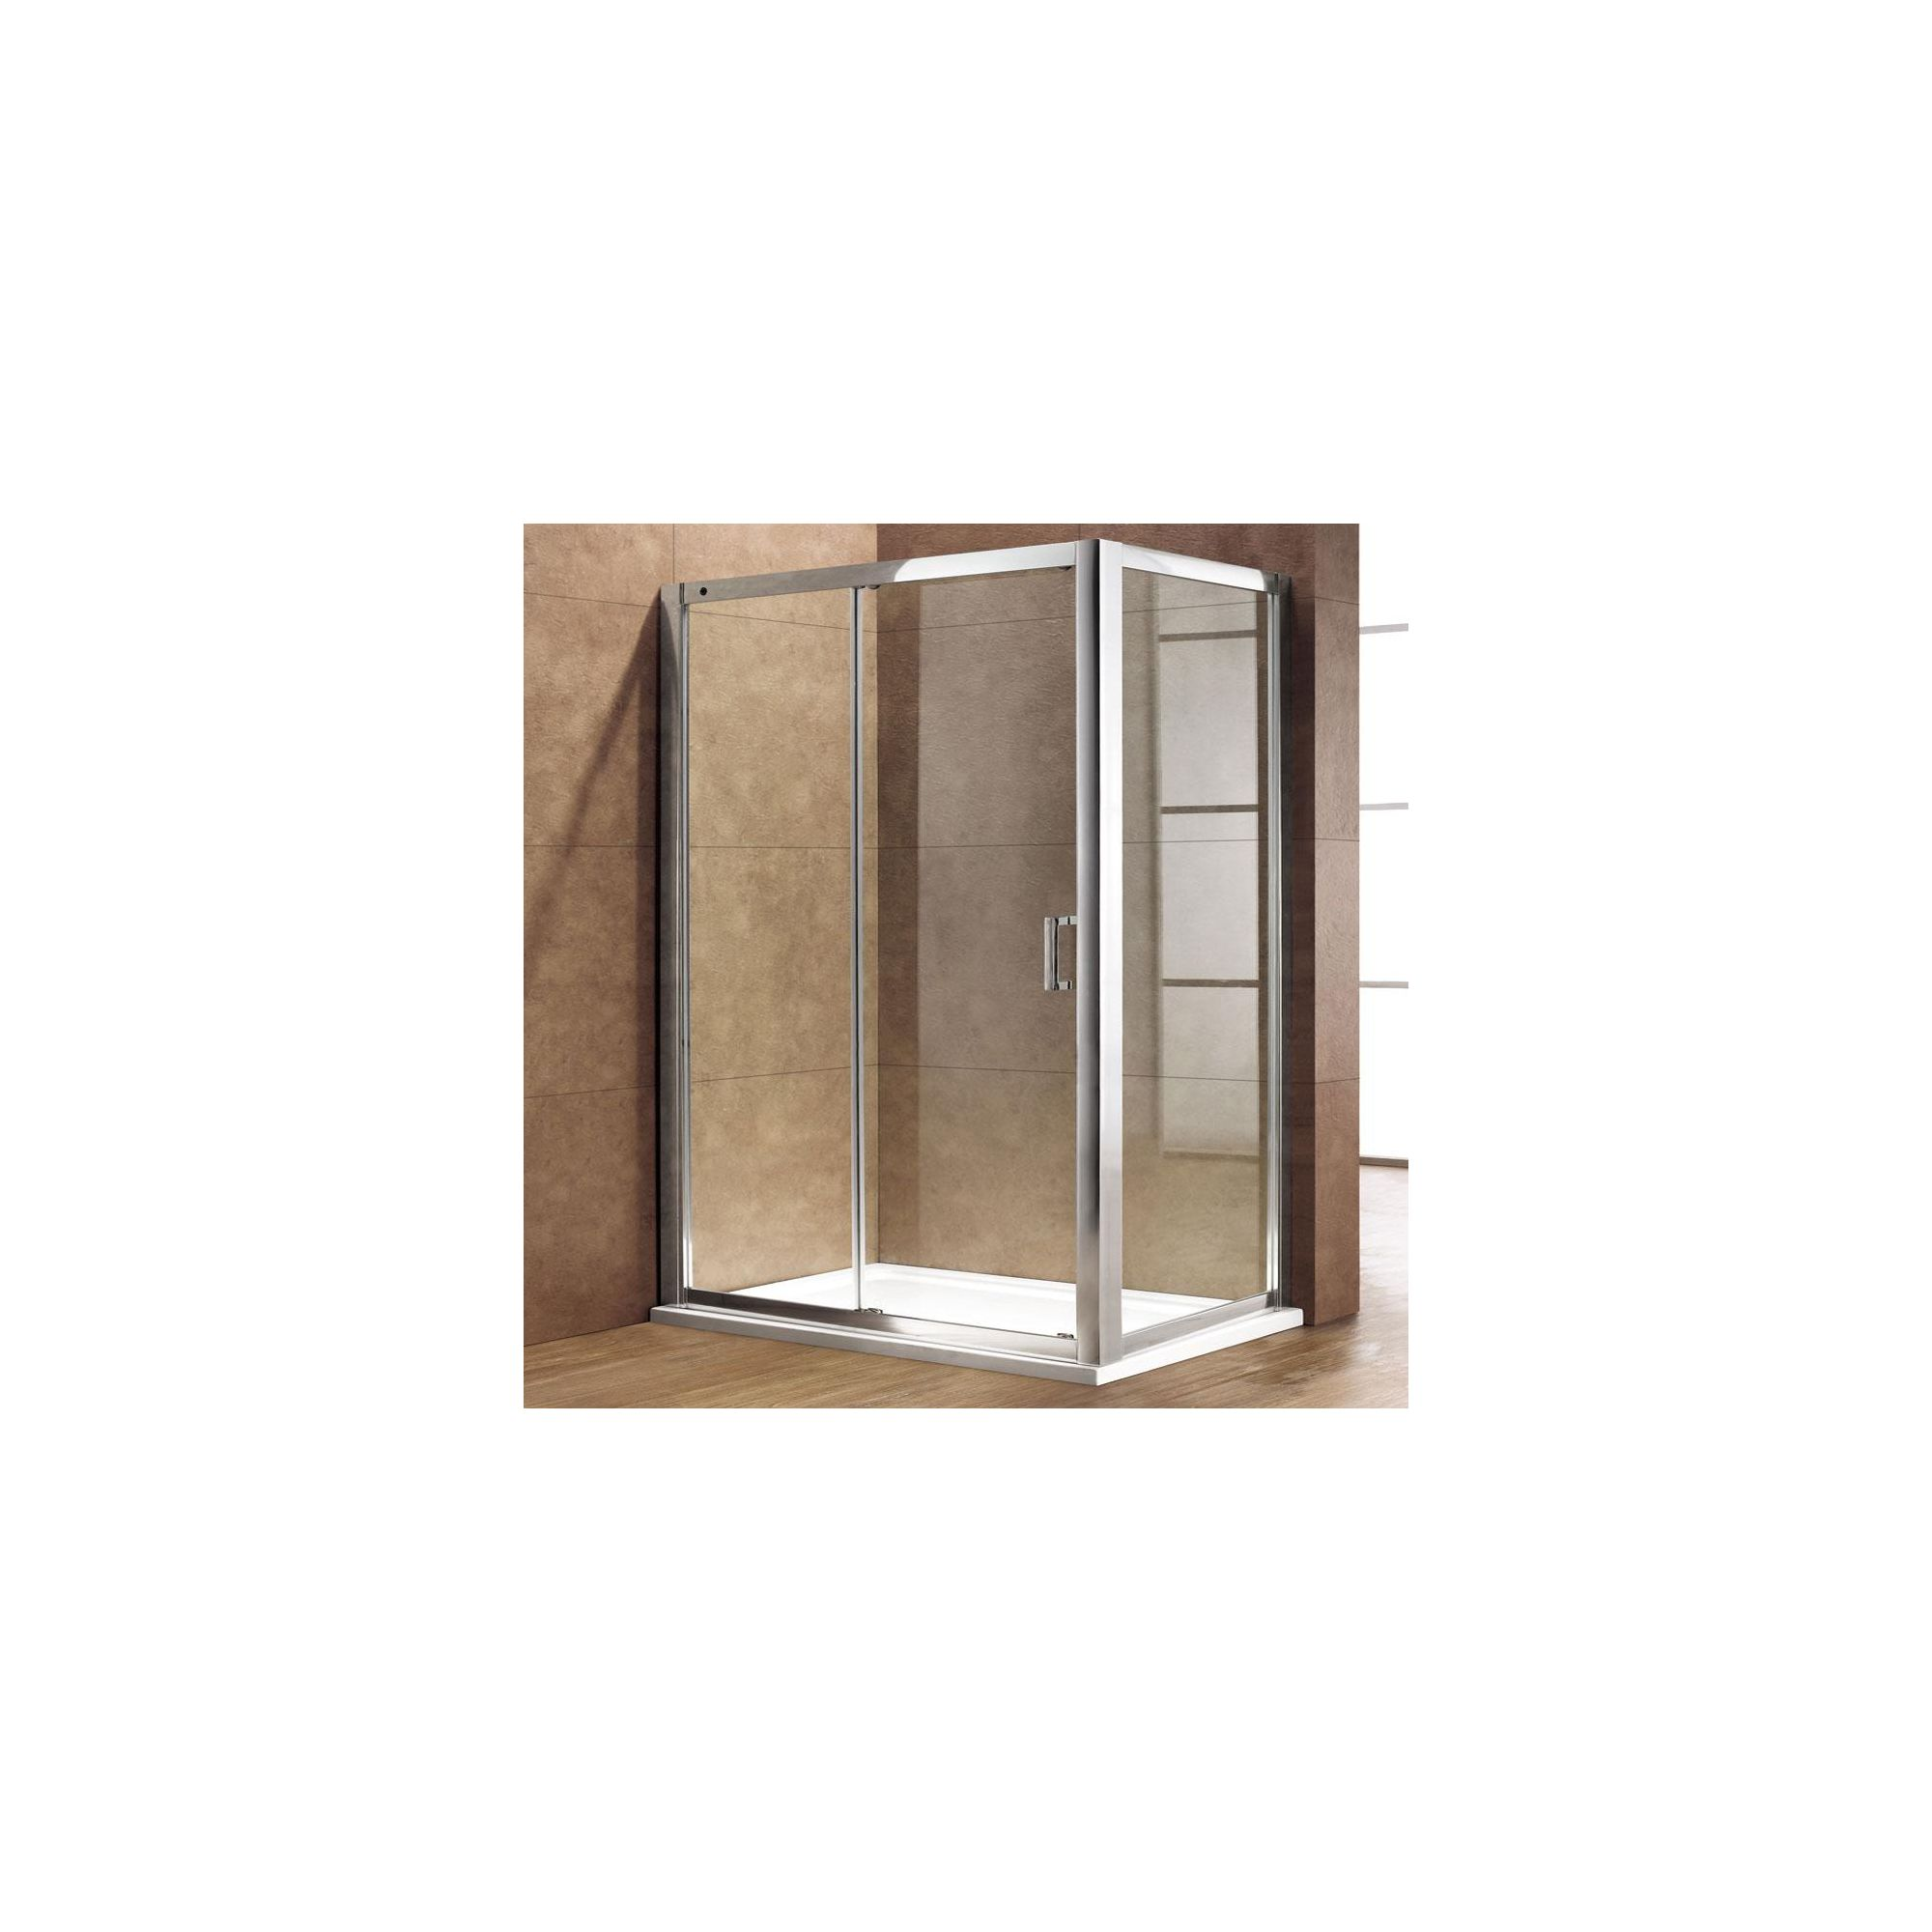 Duchy Premium Single Sliding Door Shower Enclosure, 1600mm x 800mm, 8mm Glass, Low Profile Tray at Tesco Direct